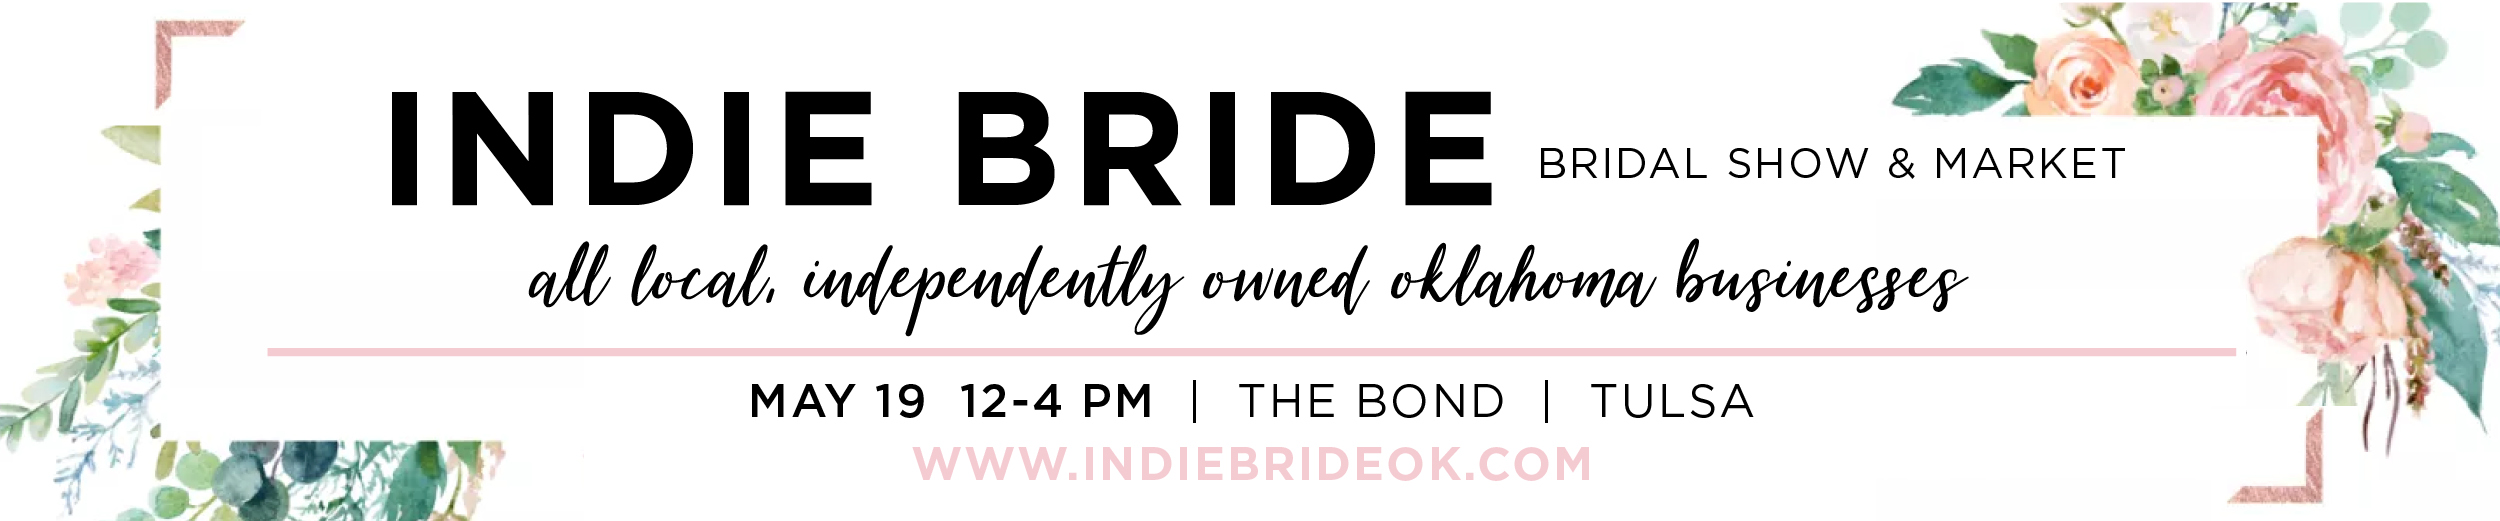 The Indie Bride Bridal Show & Market is Coming to Tulsa!